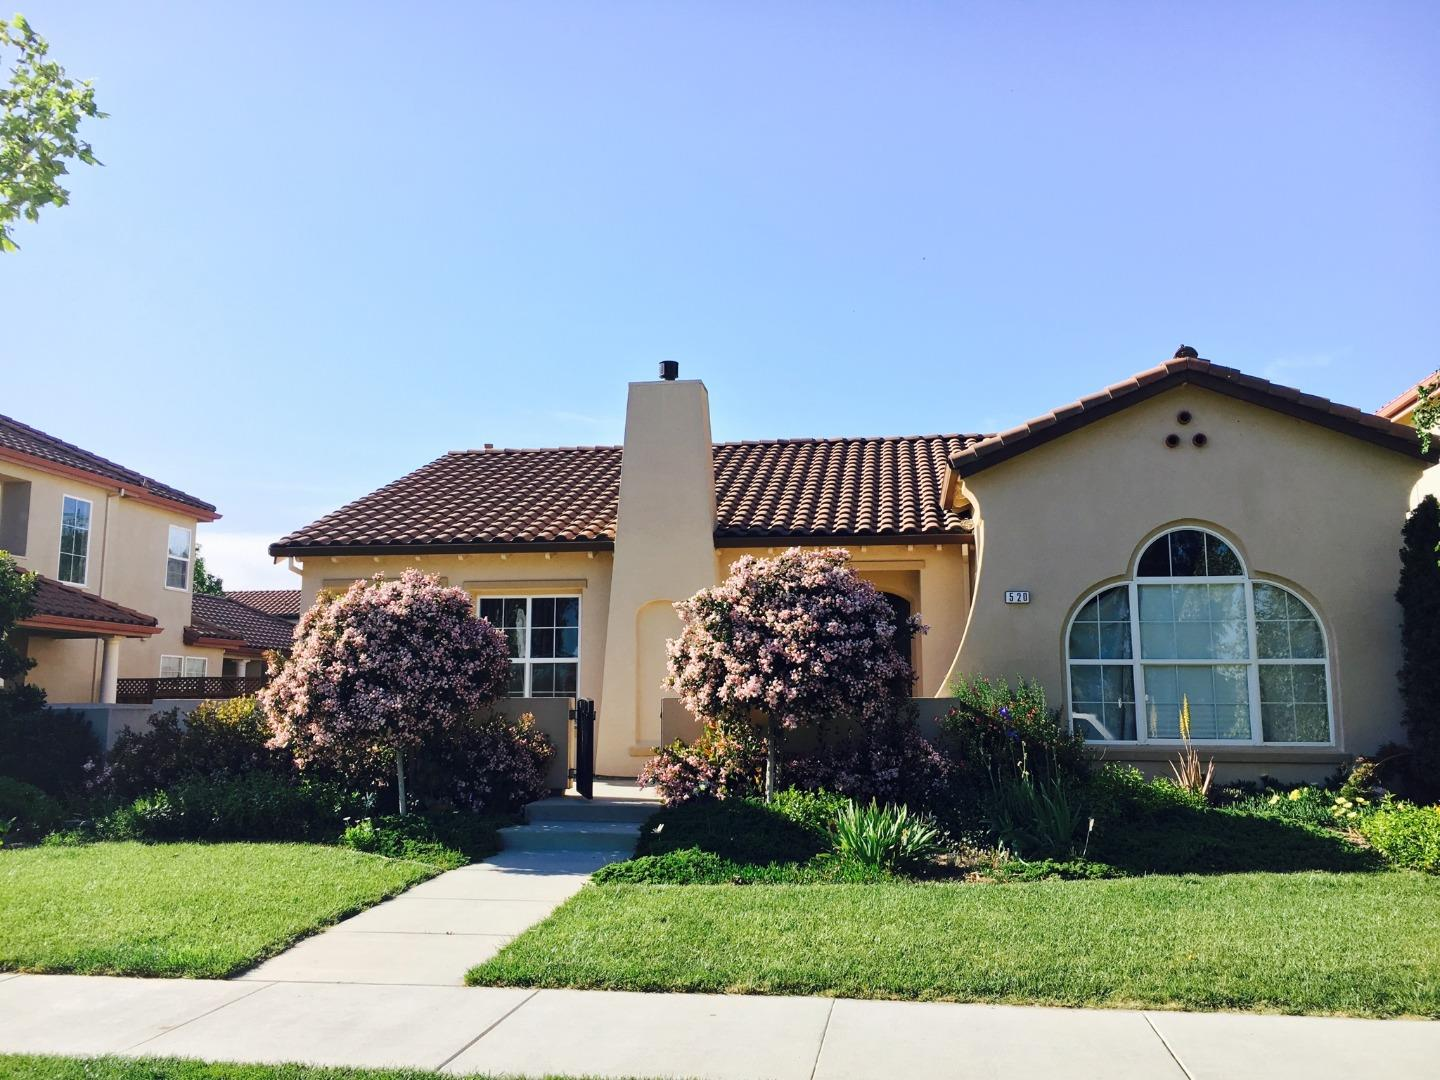 Single Family Home for Sale at 520 San Antonio Drive 520 San Antonio Drive King City, California 93930 United States